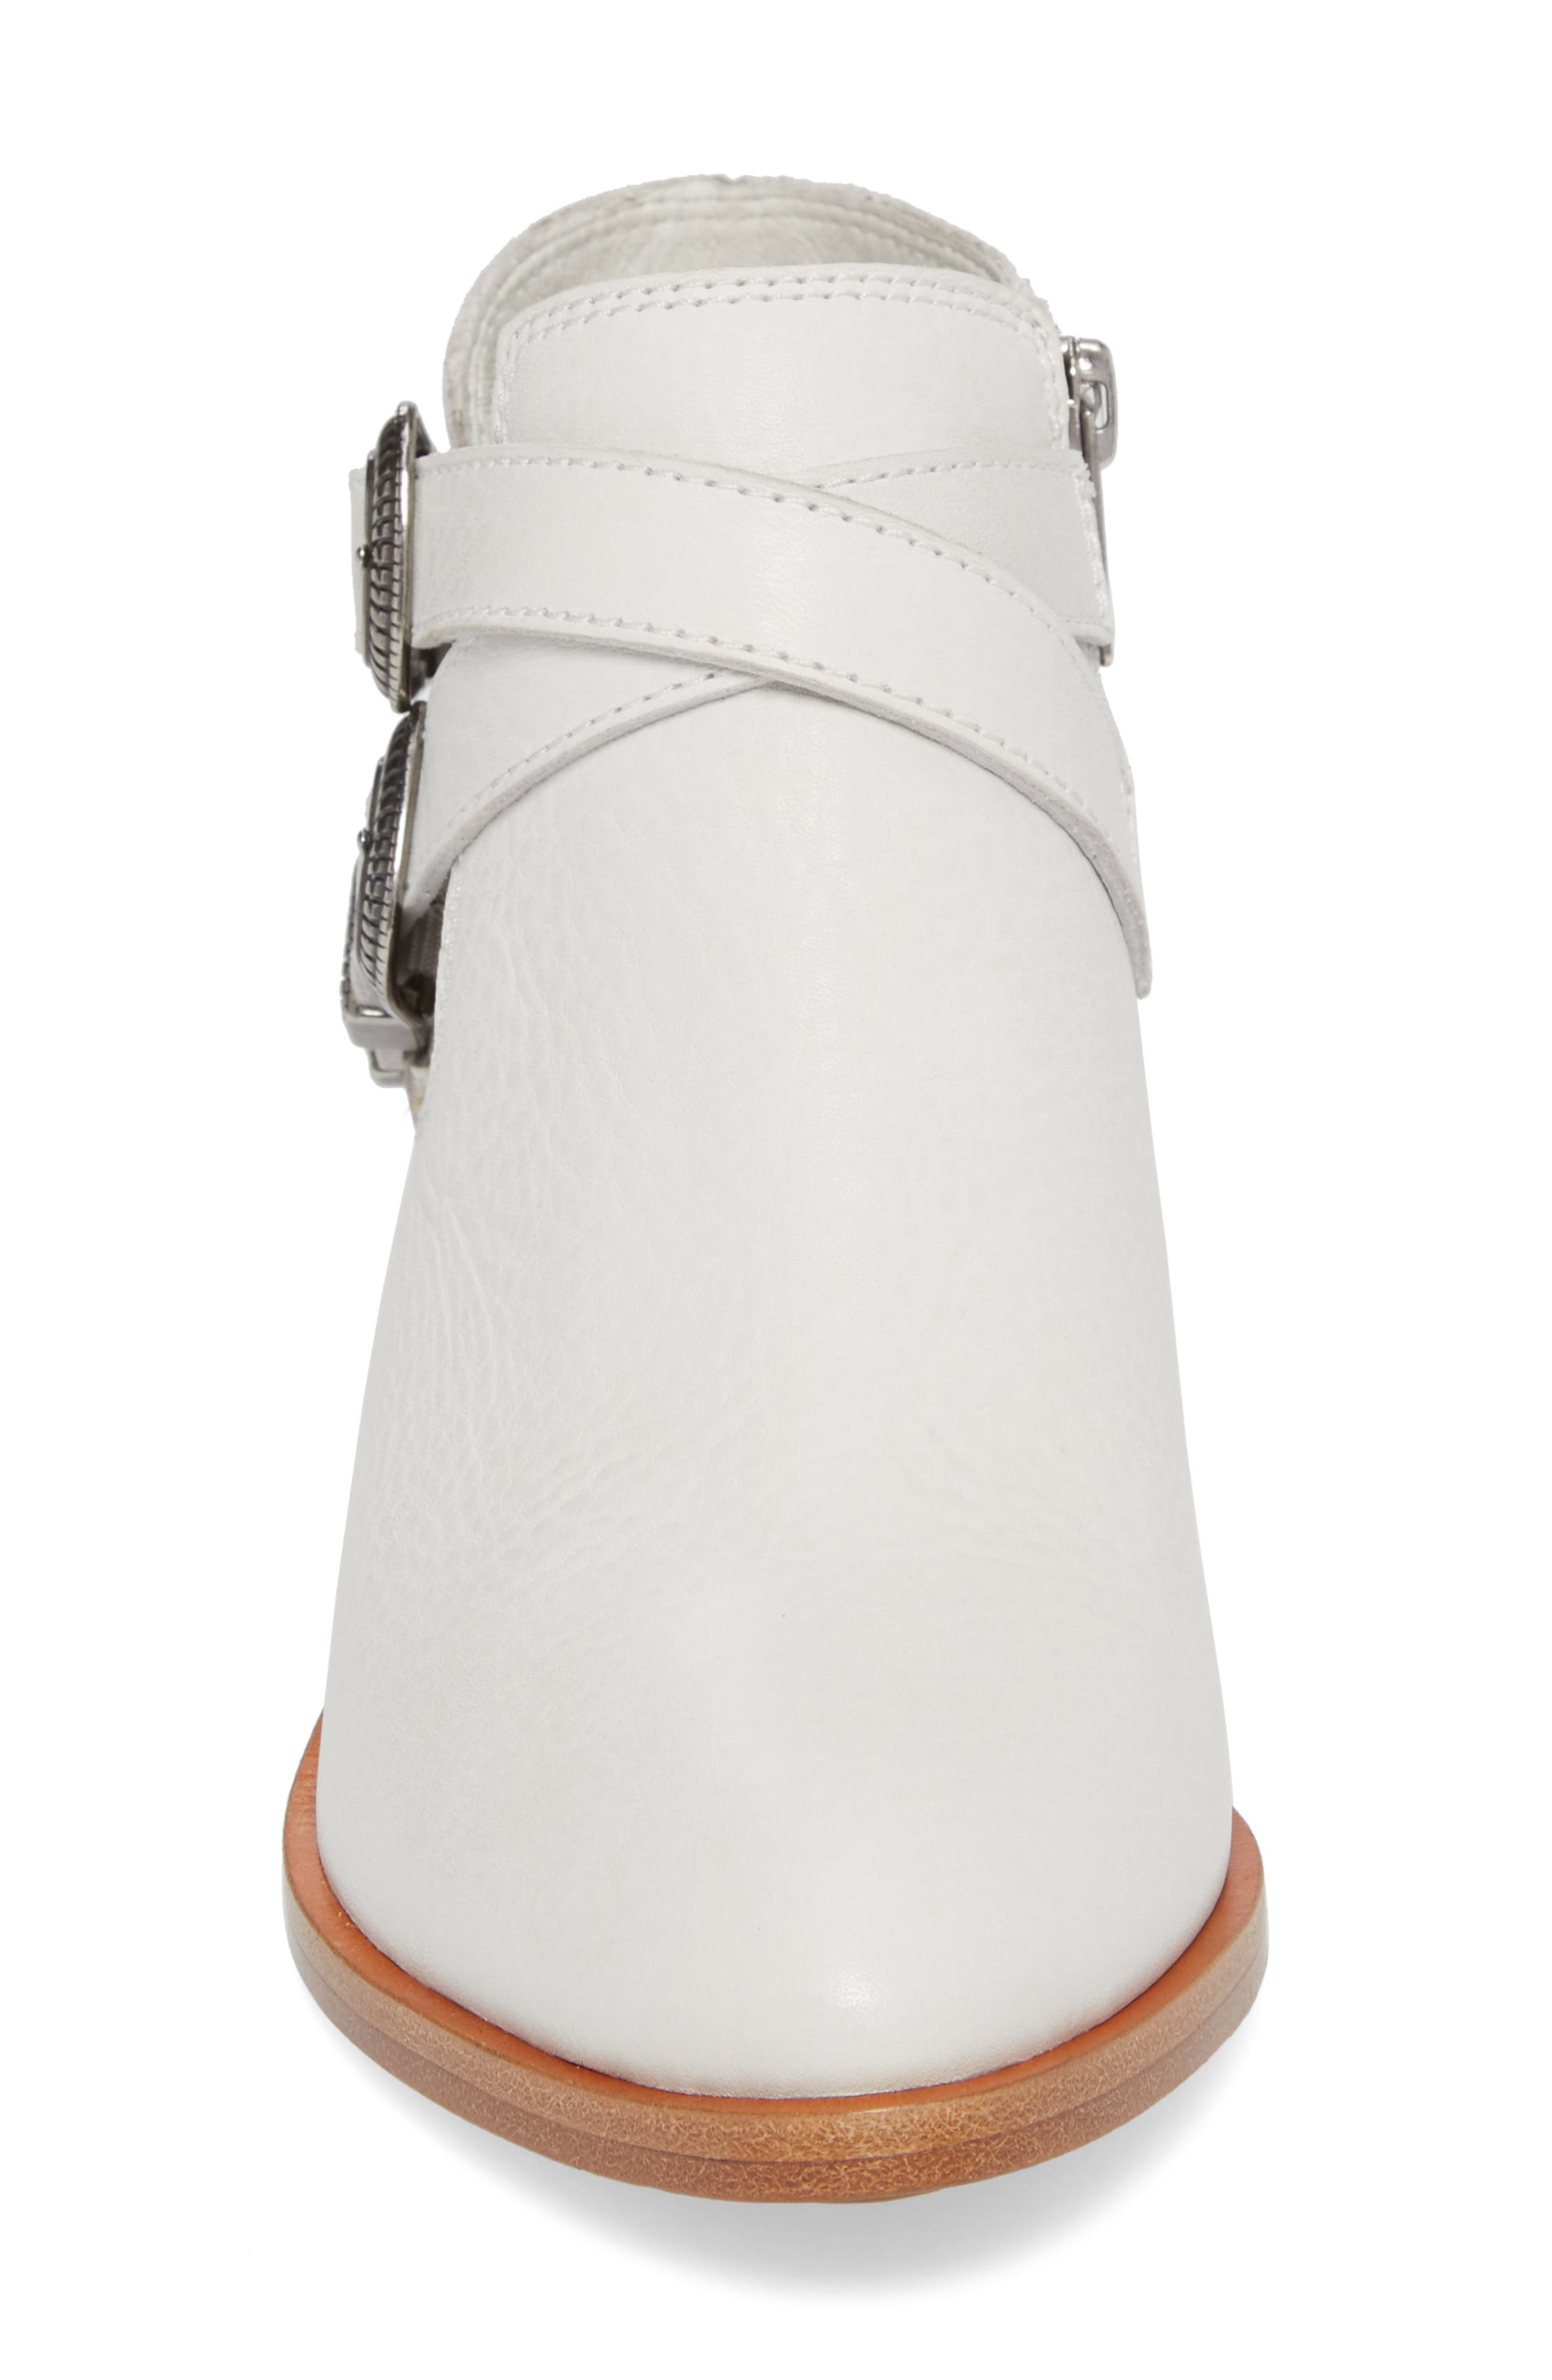 Ray Western Bootie,                             Alternate thumbnail 4, color,                             White/ White Leather